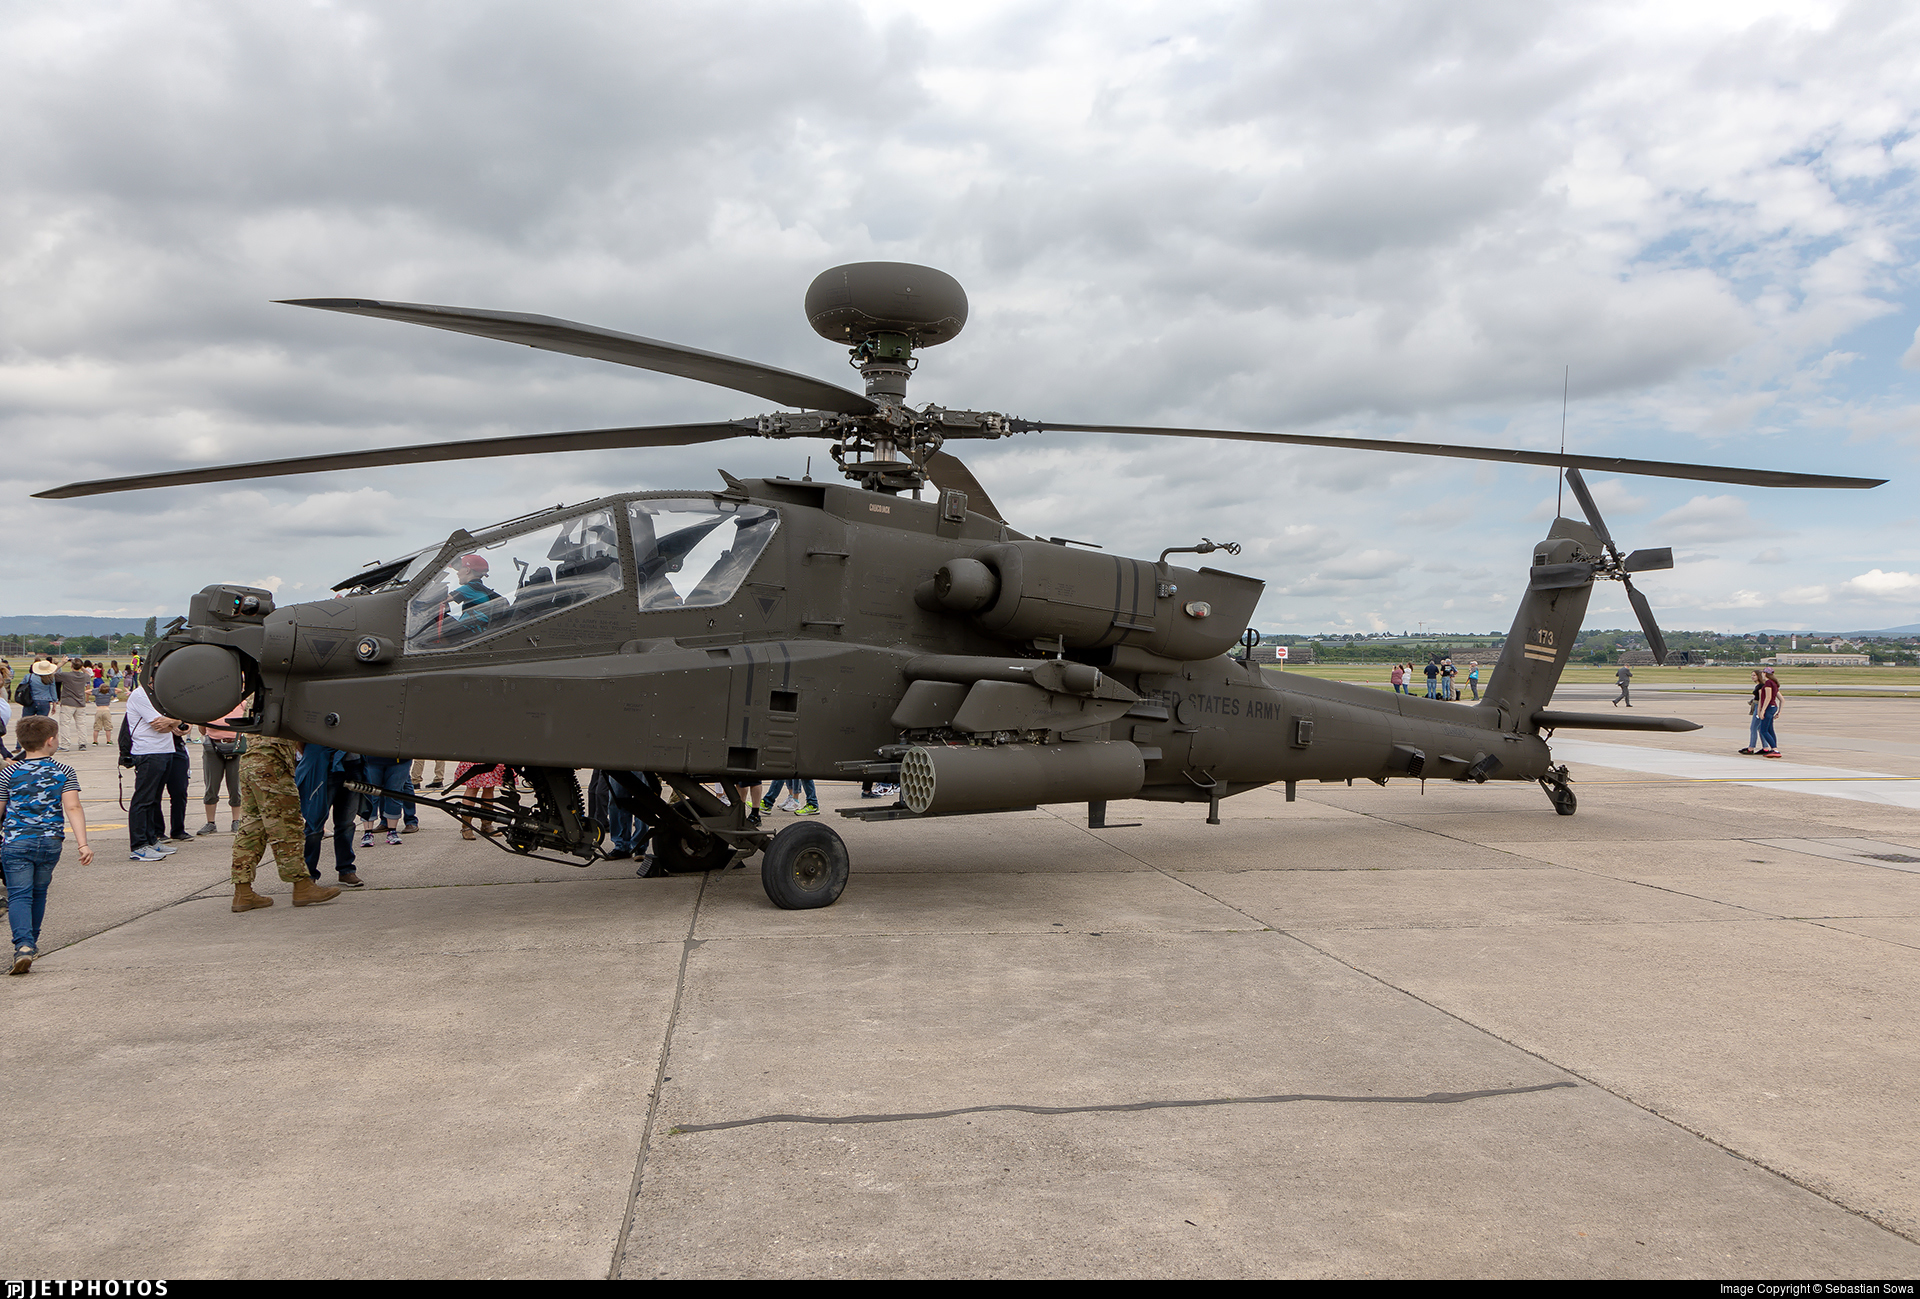 17-03173 - Boeing AH-64E Apache Guardian - United States - US Army